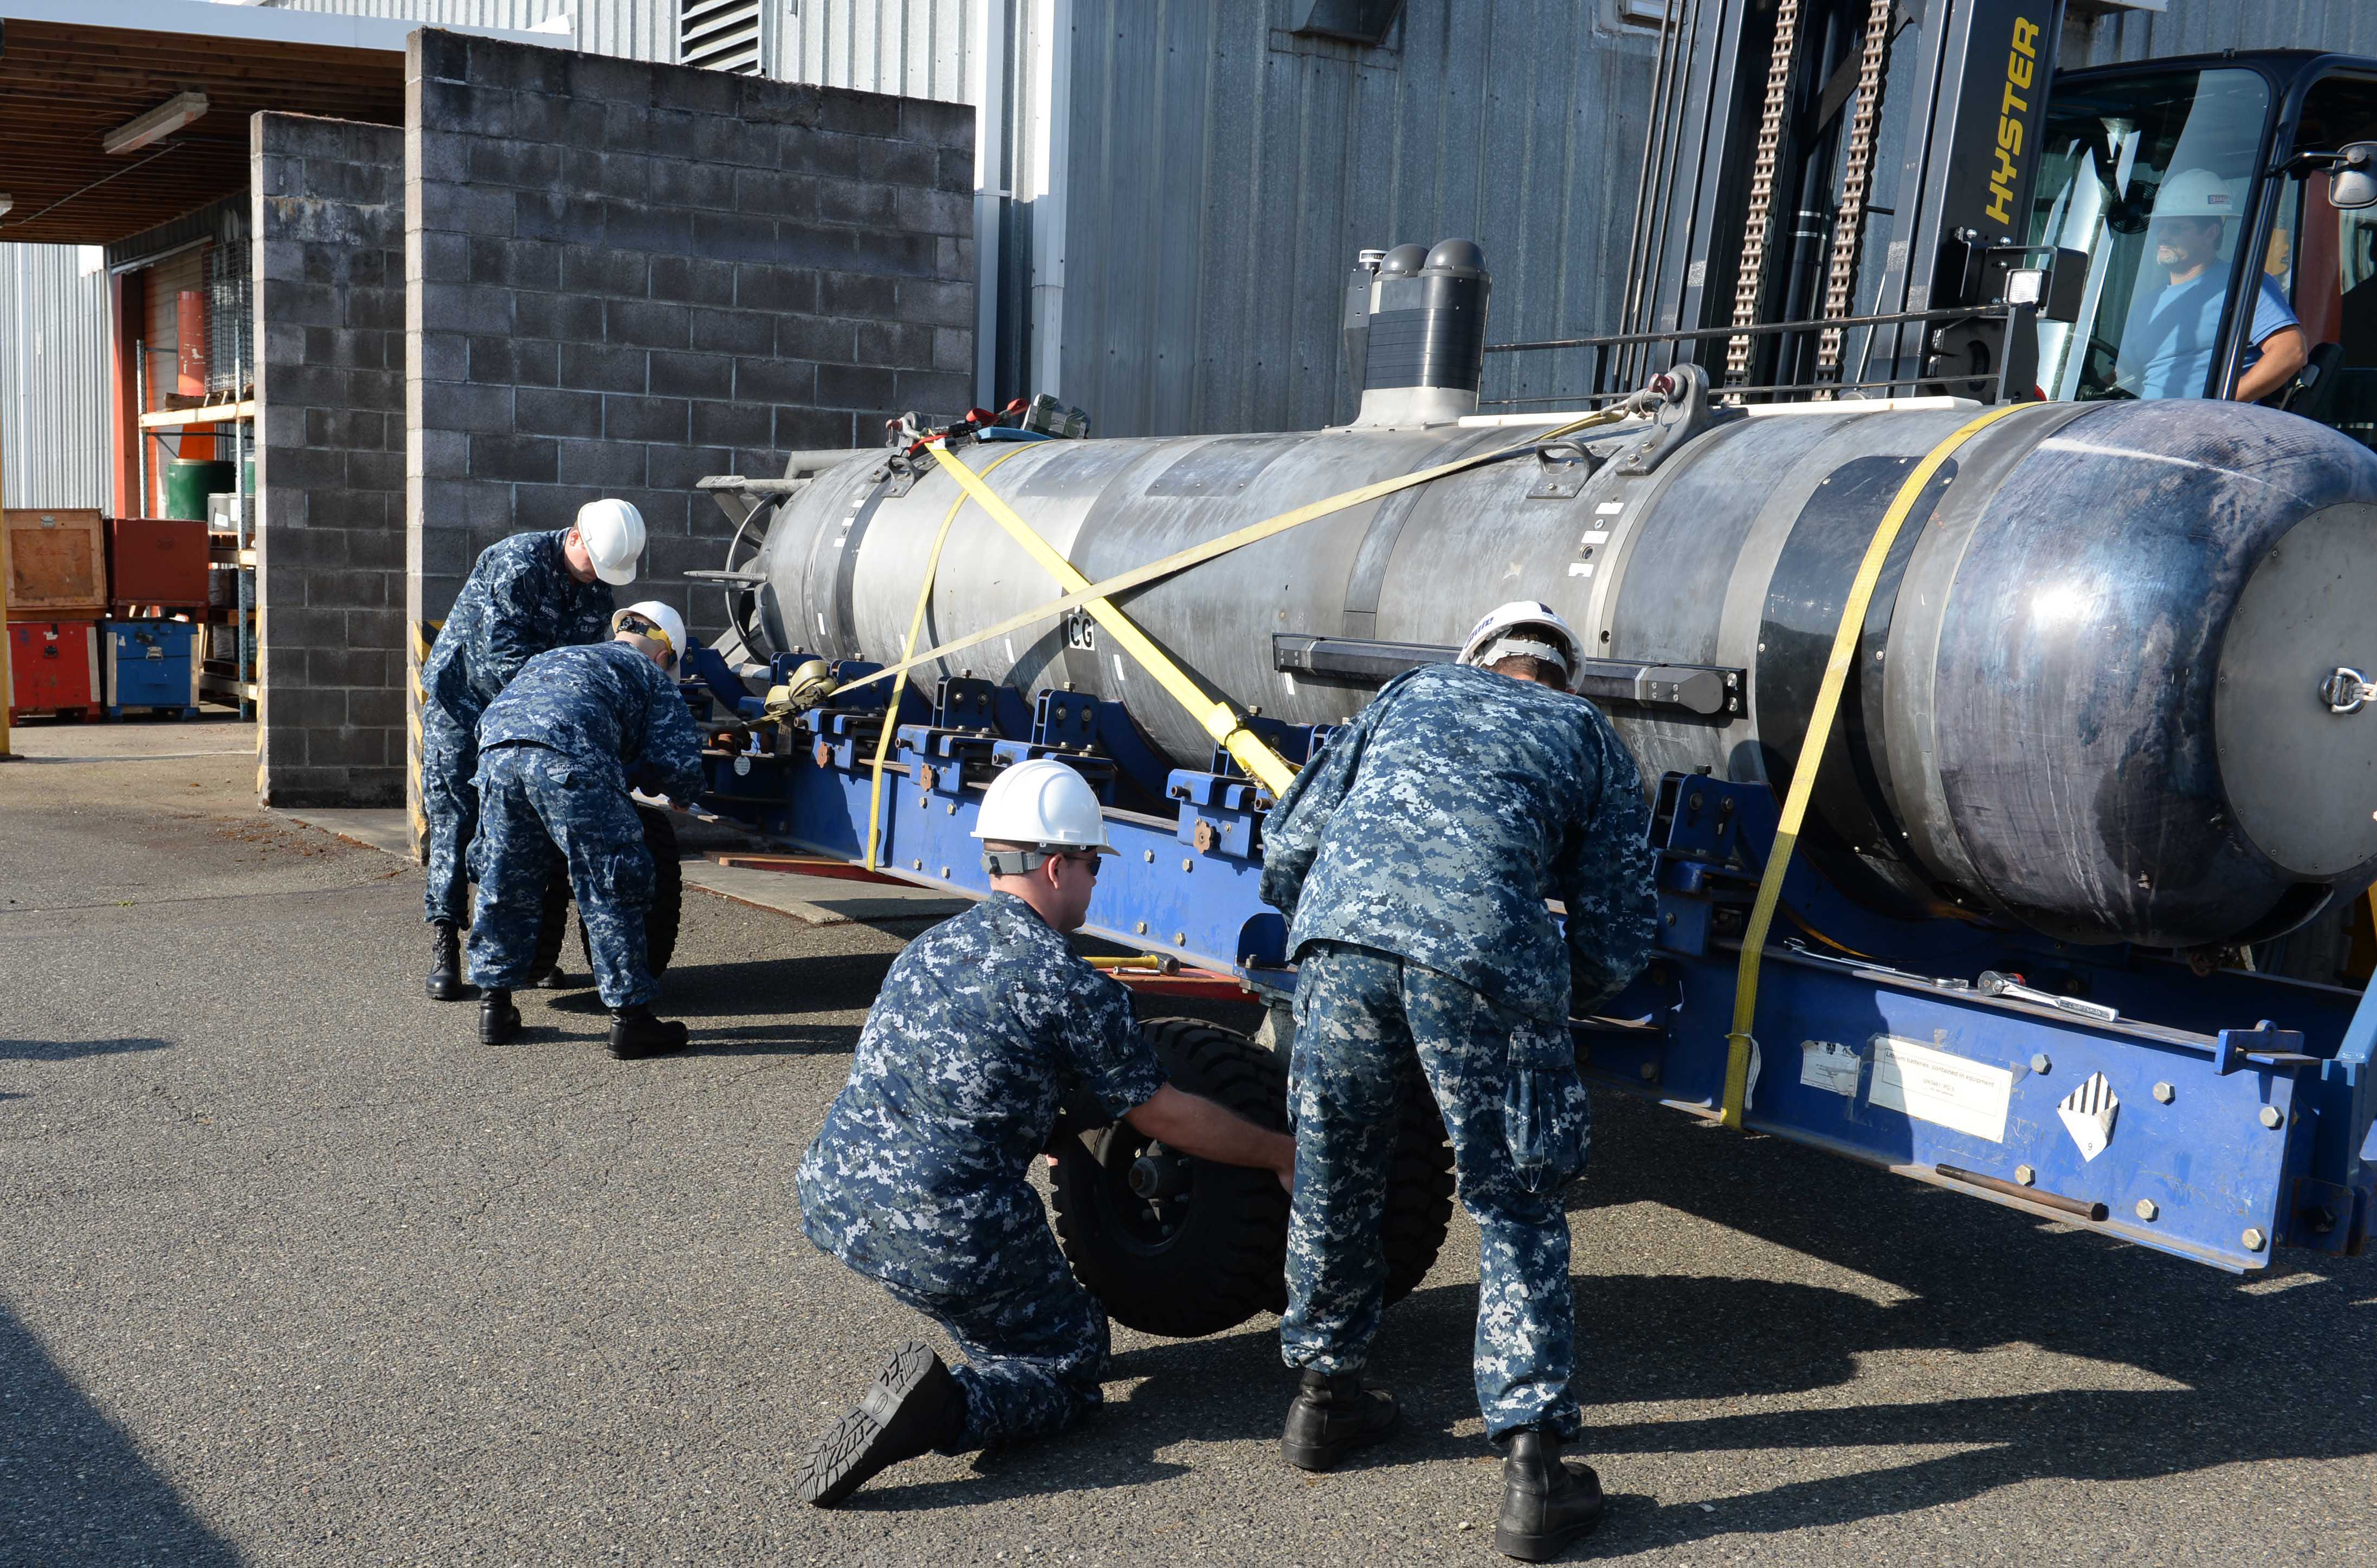 140822-N-MN975-012 KEYPORT, Wash. (Aug. 22, 2014) Sailors assigned to Commander, Submarine Development Squadron (CSDS) 5, Detachment Unmanned Undersea Vehicle, prepare Large Training Vehicle 38 (LTV 38), an unmanned undersea vehicle, to be unloaded at Naval Undersea Warfare Center-Keyport. LTV 38 is designed as a full-pressure hull vehicle, capable of both line of sight and over the horizon communications in support of intelligence, surveillance and reconnaissance (ISR) missions. (U.S. Navy photo by Mass Communication Specialist 2nd Class Justin A. Johndro/Released)